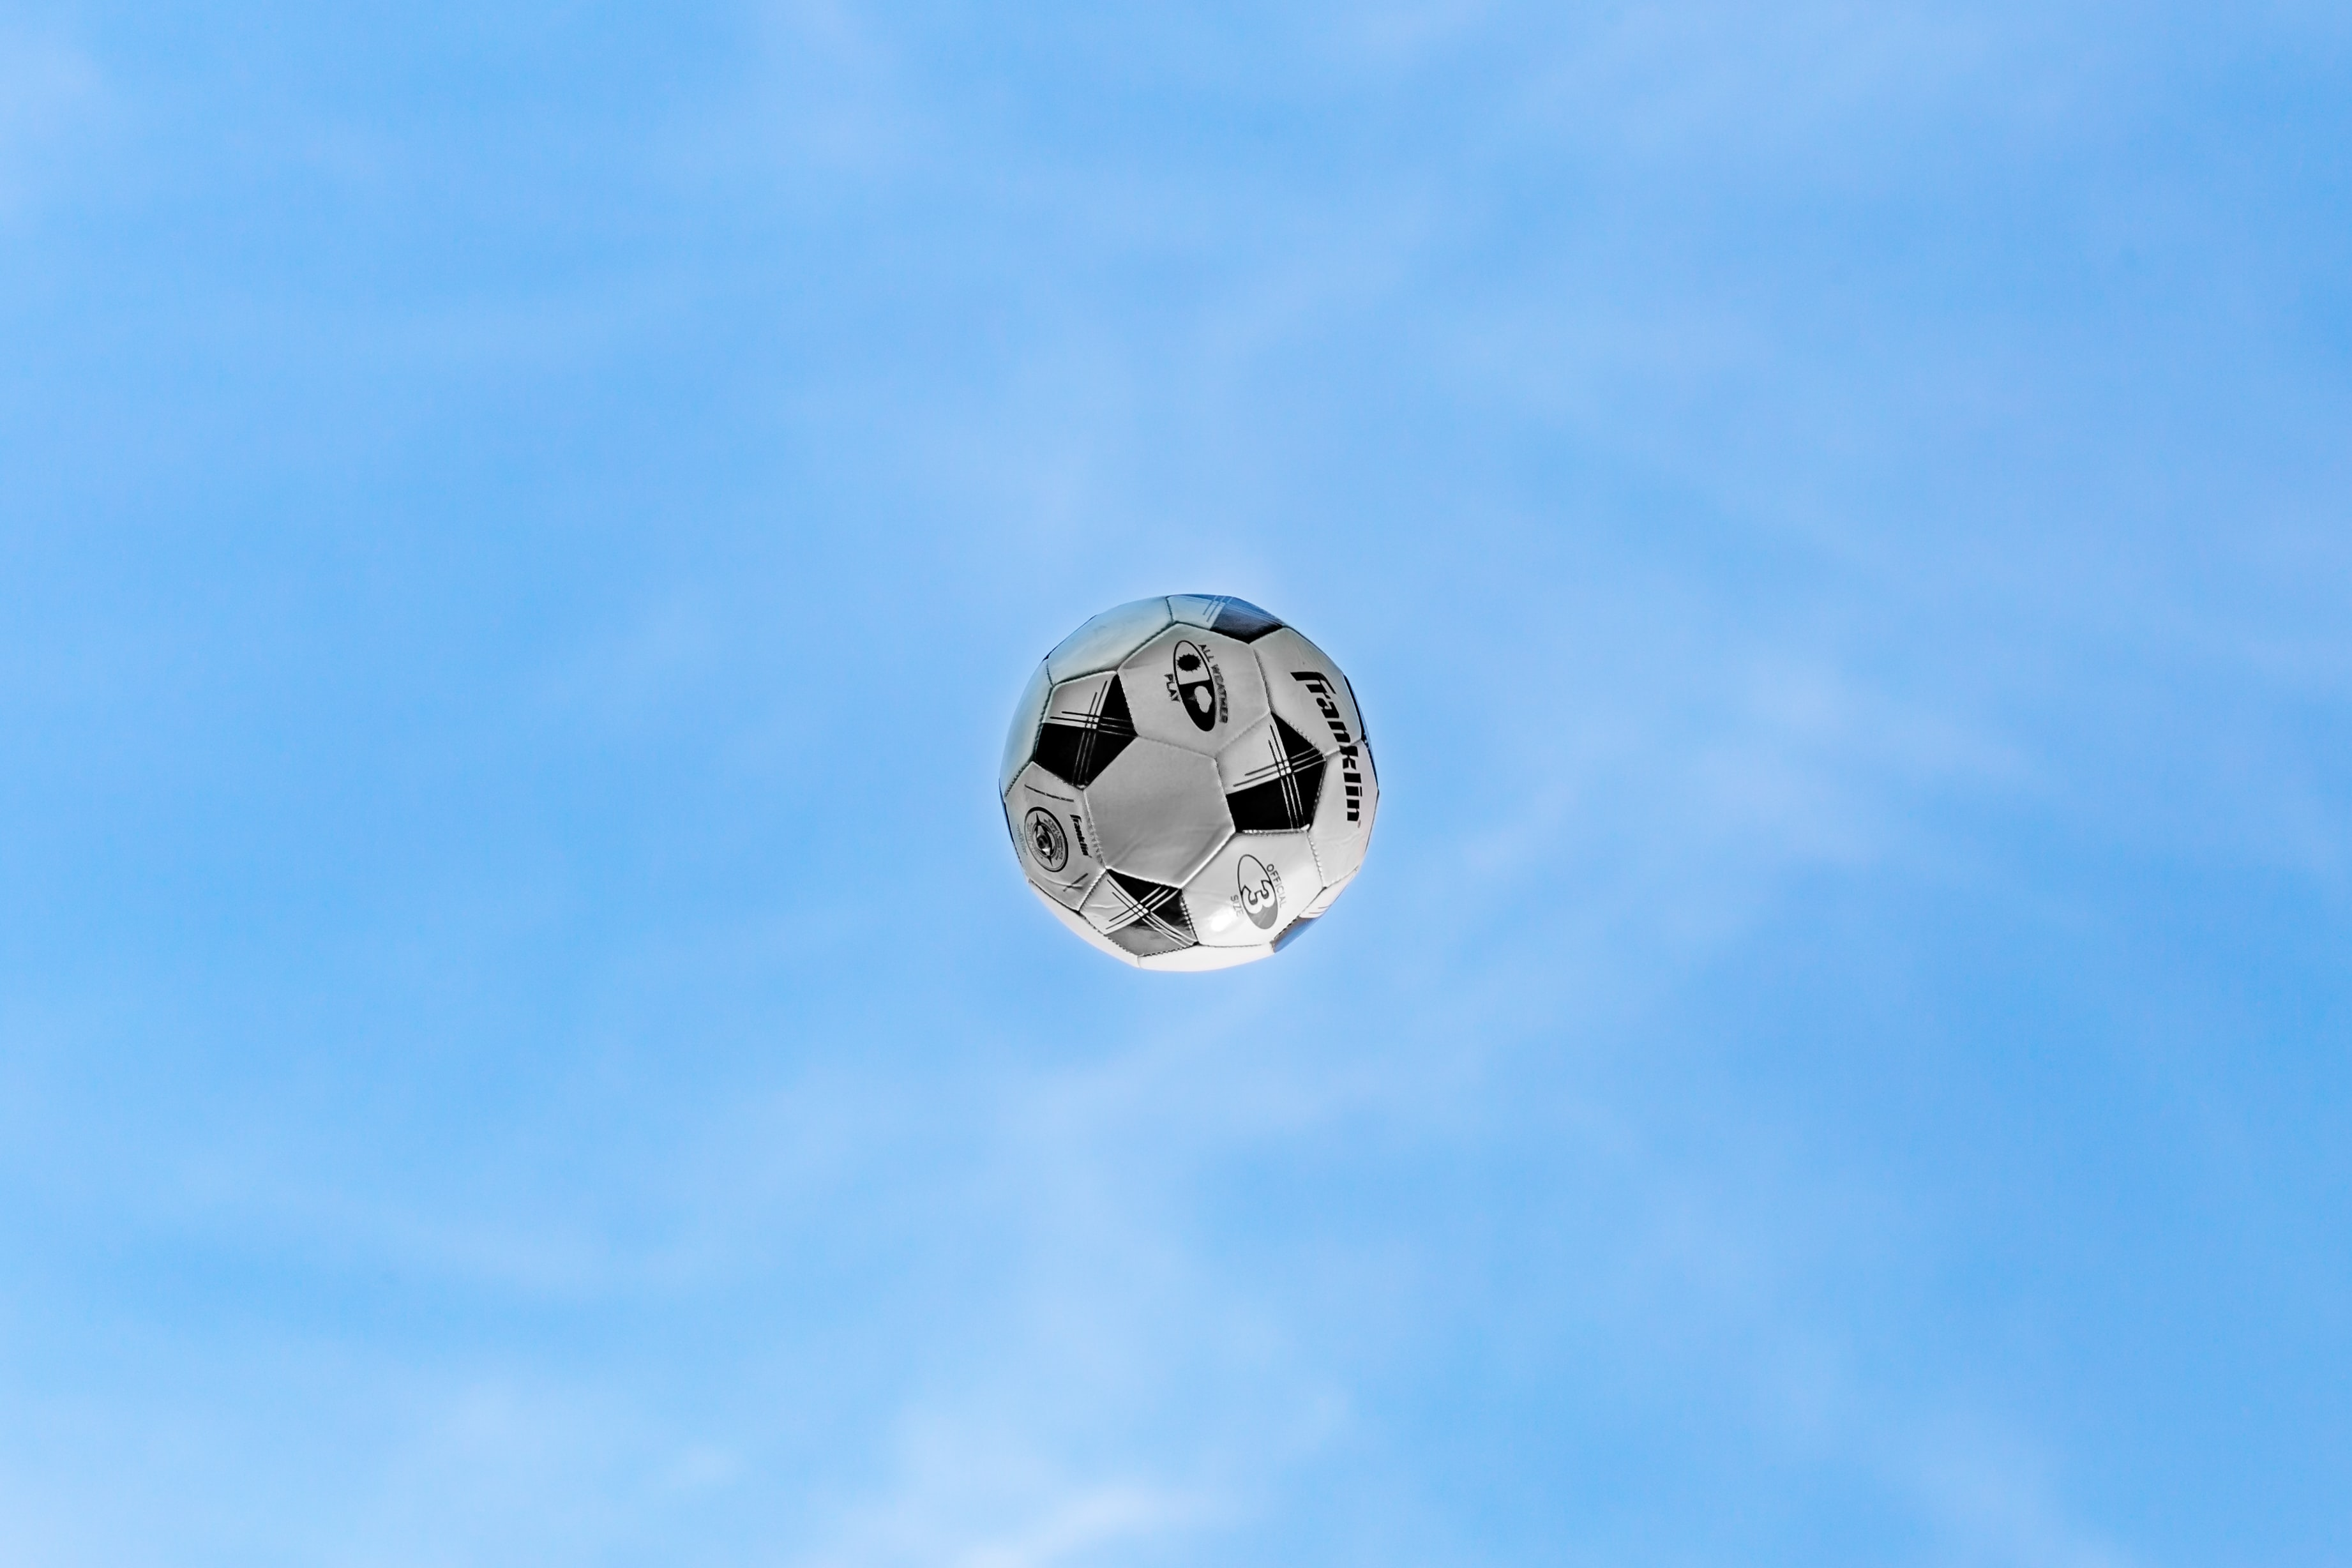 white and black soccer ball on air